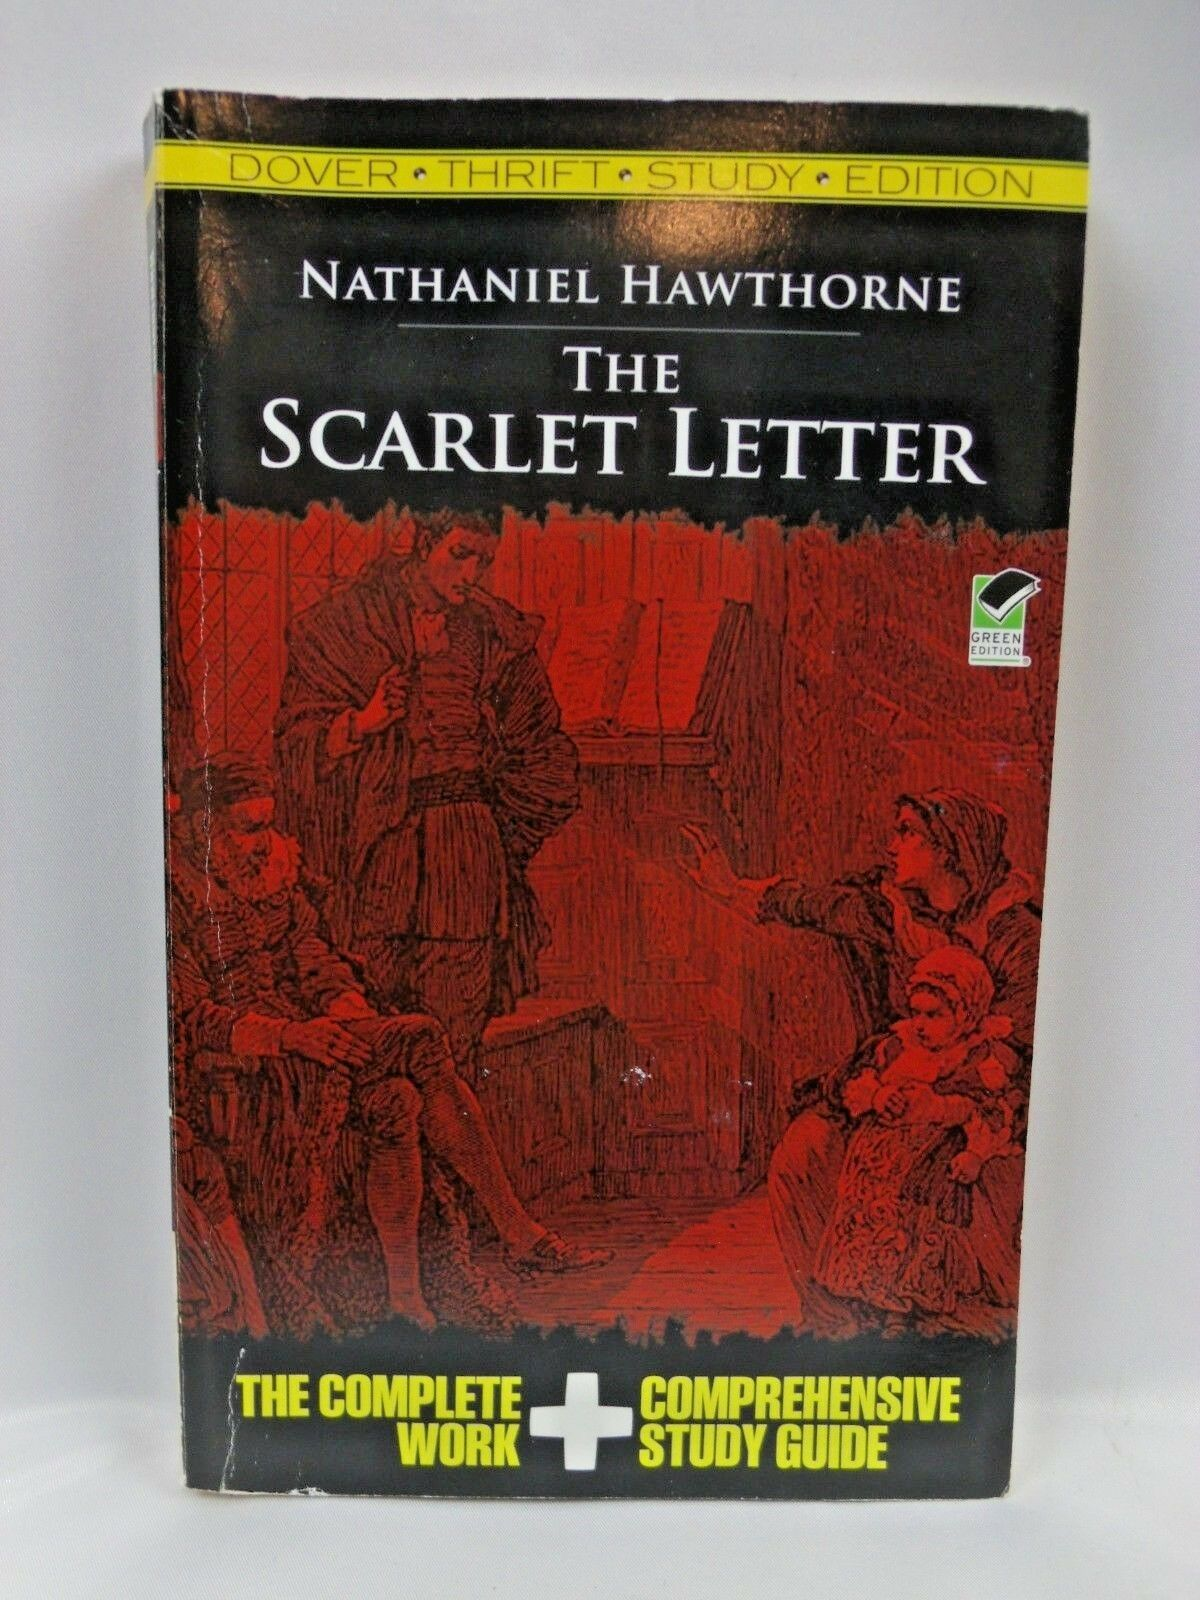 Dover Thrift Study Edition The Scarlet Letter By Nathaniel Hawthorne 2009 Paperback